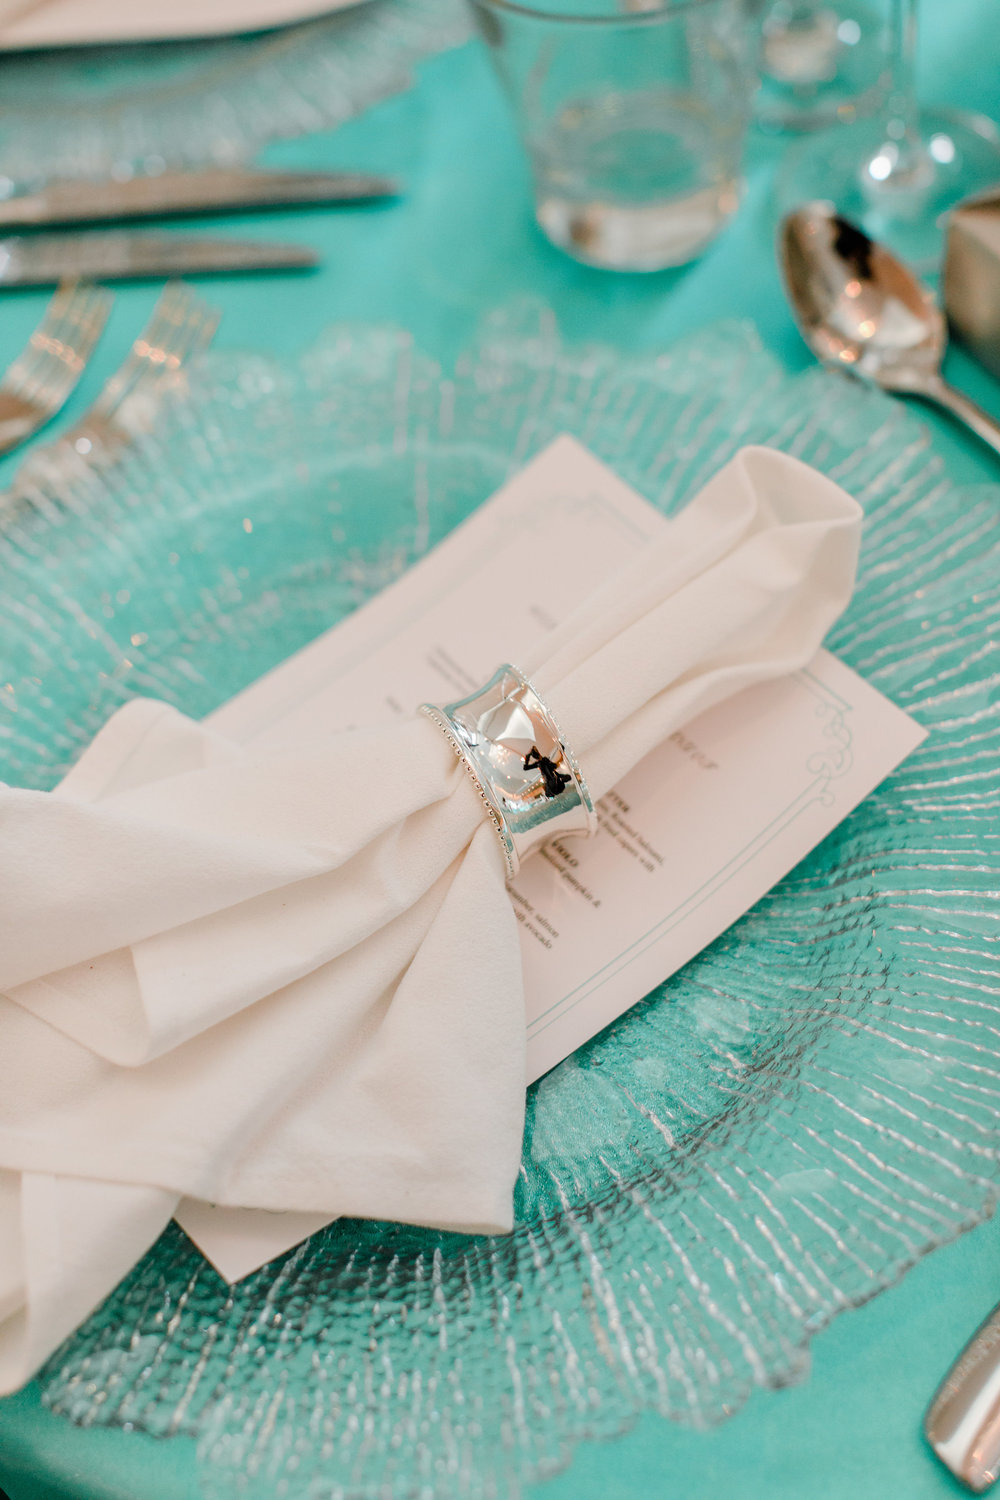 14 Tiffany Blue Satin Linen Tablecloth, Clear Crystal Cut Glass Charger Plate and Silver Napkin Ring.jpg